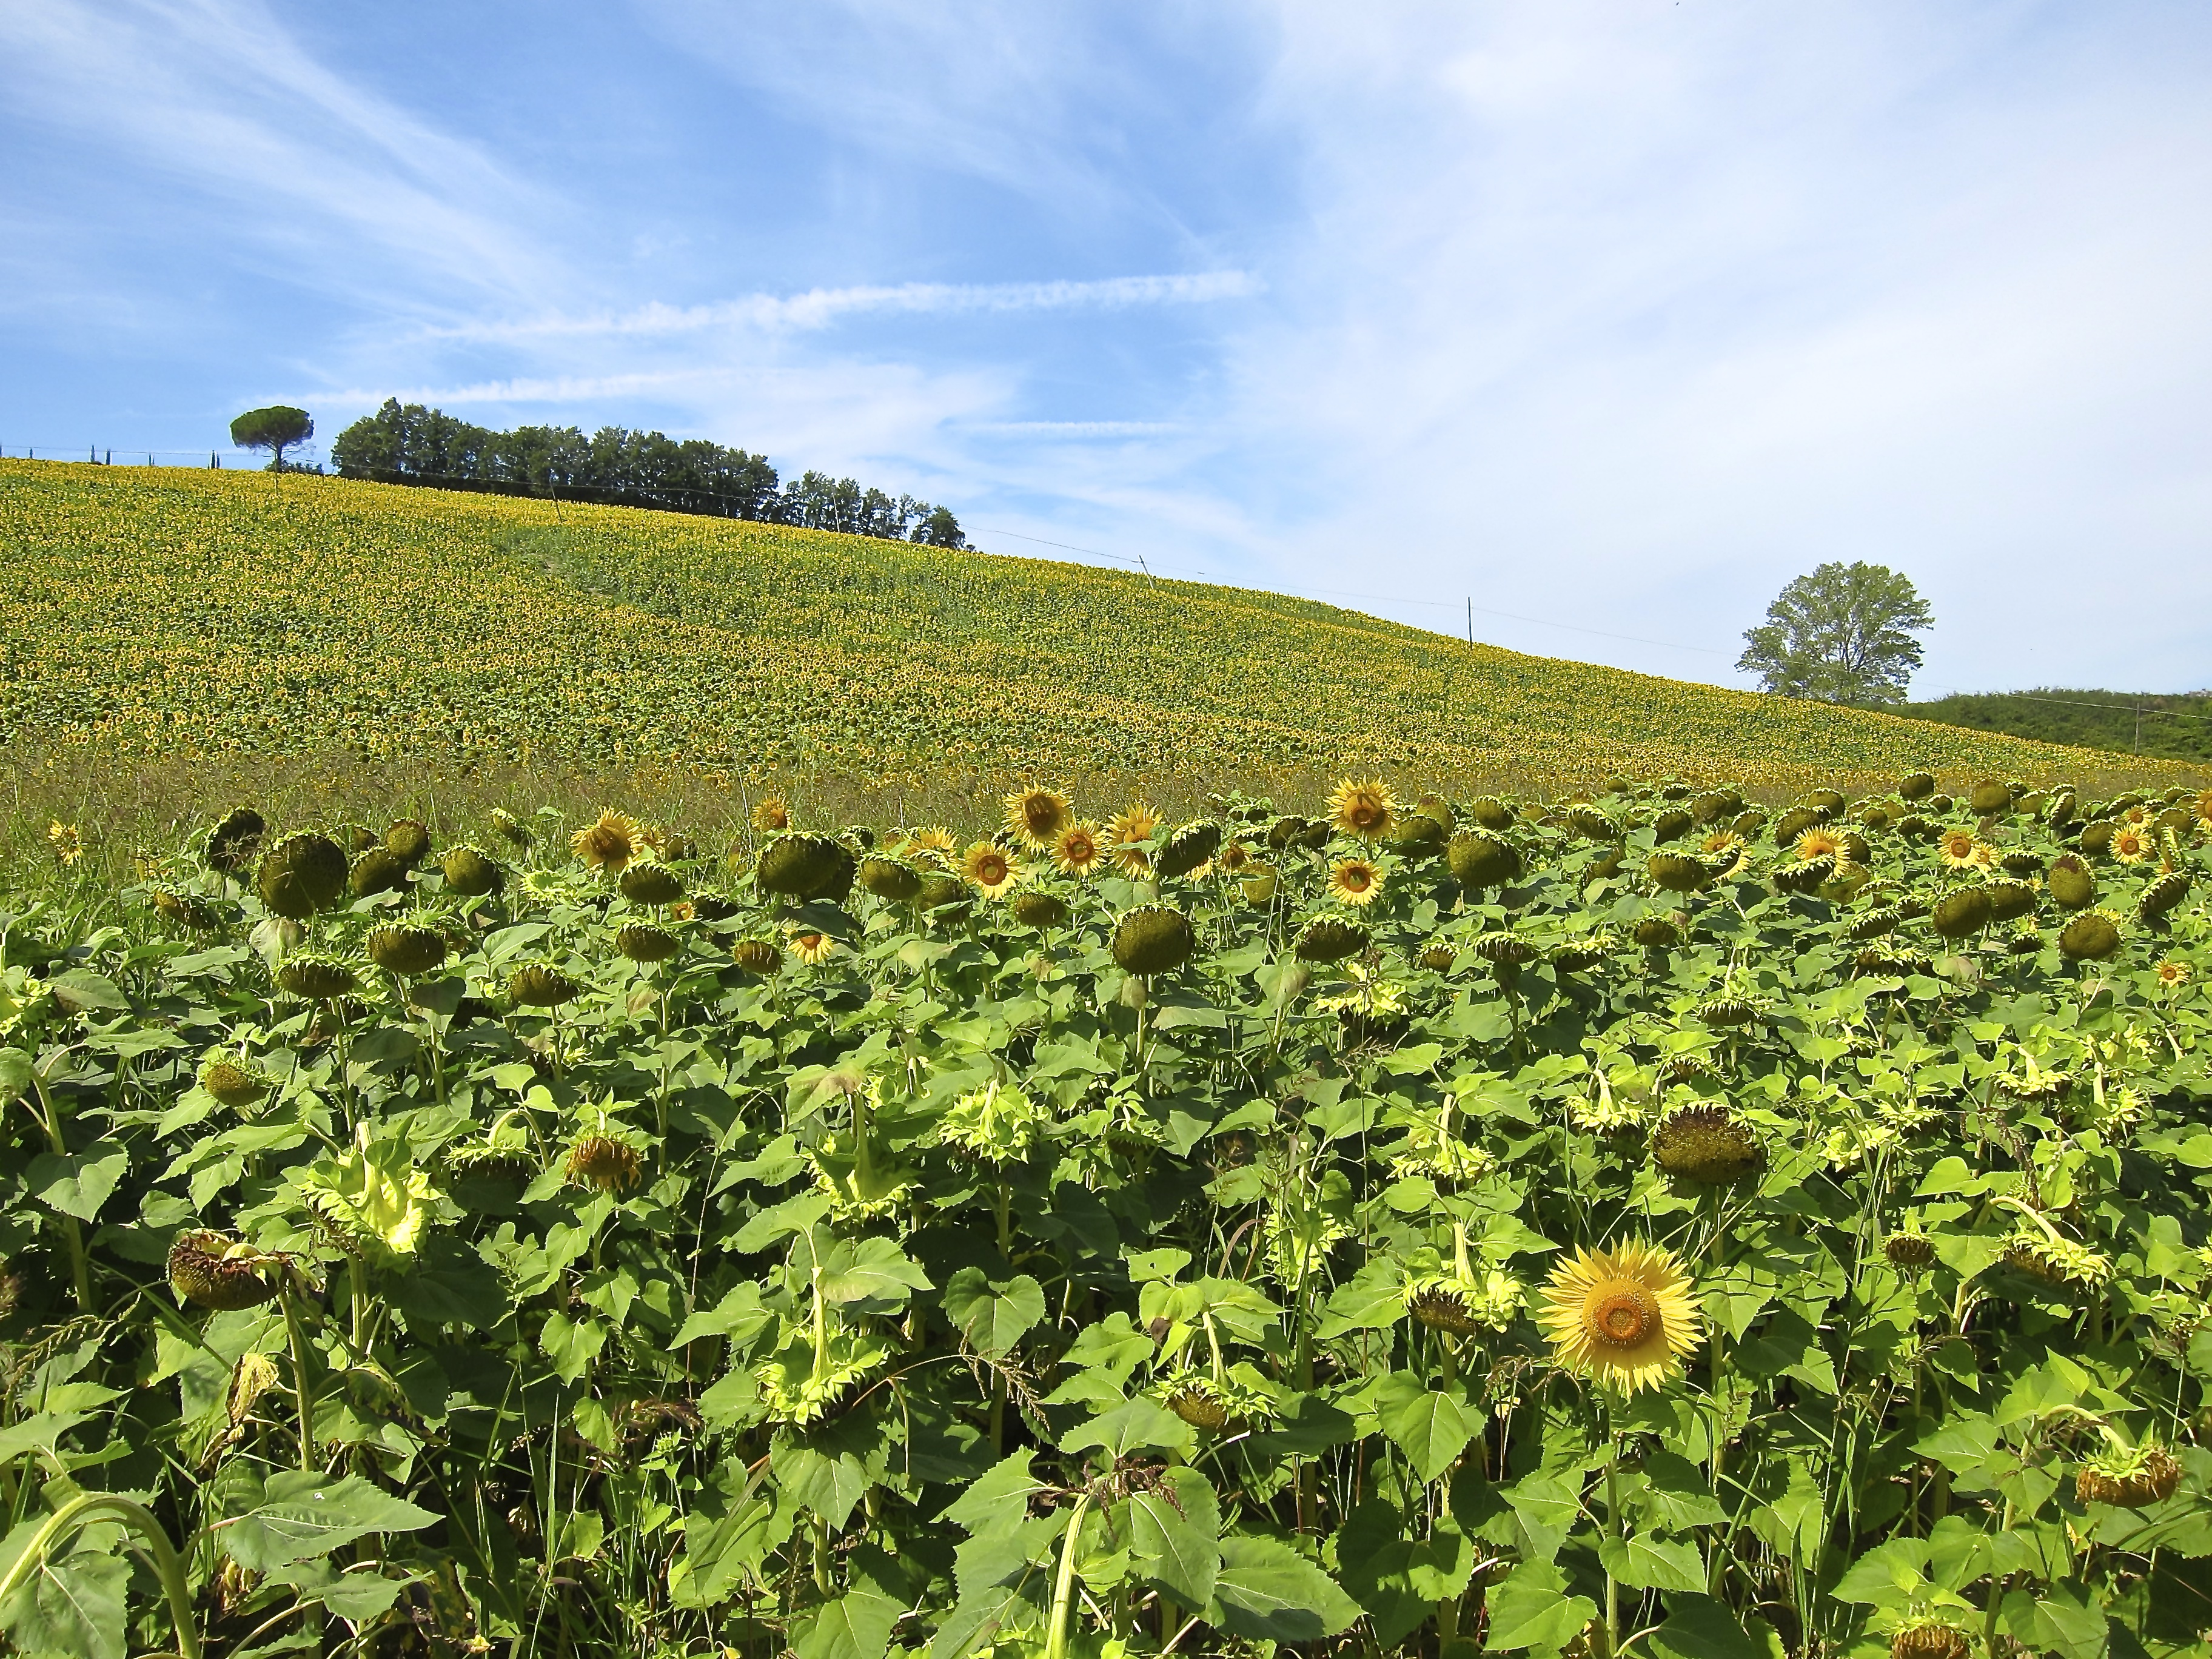 Sunflowers in Tuscany Bike tour